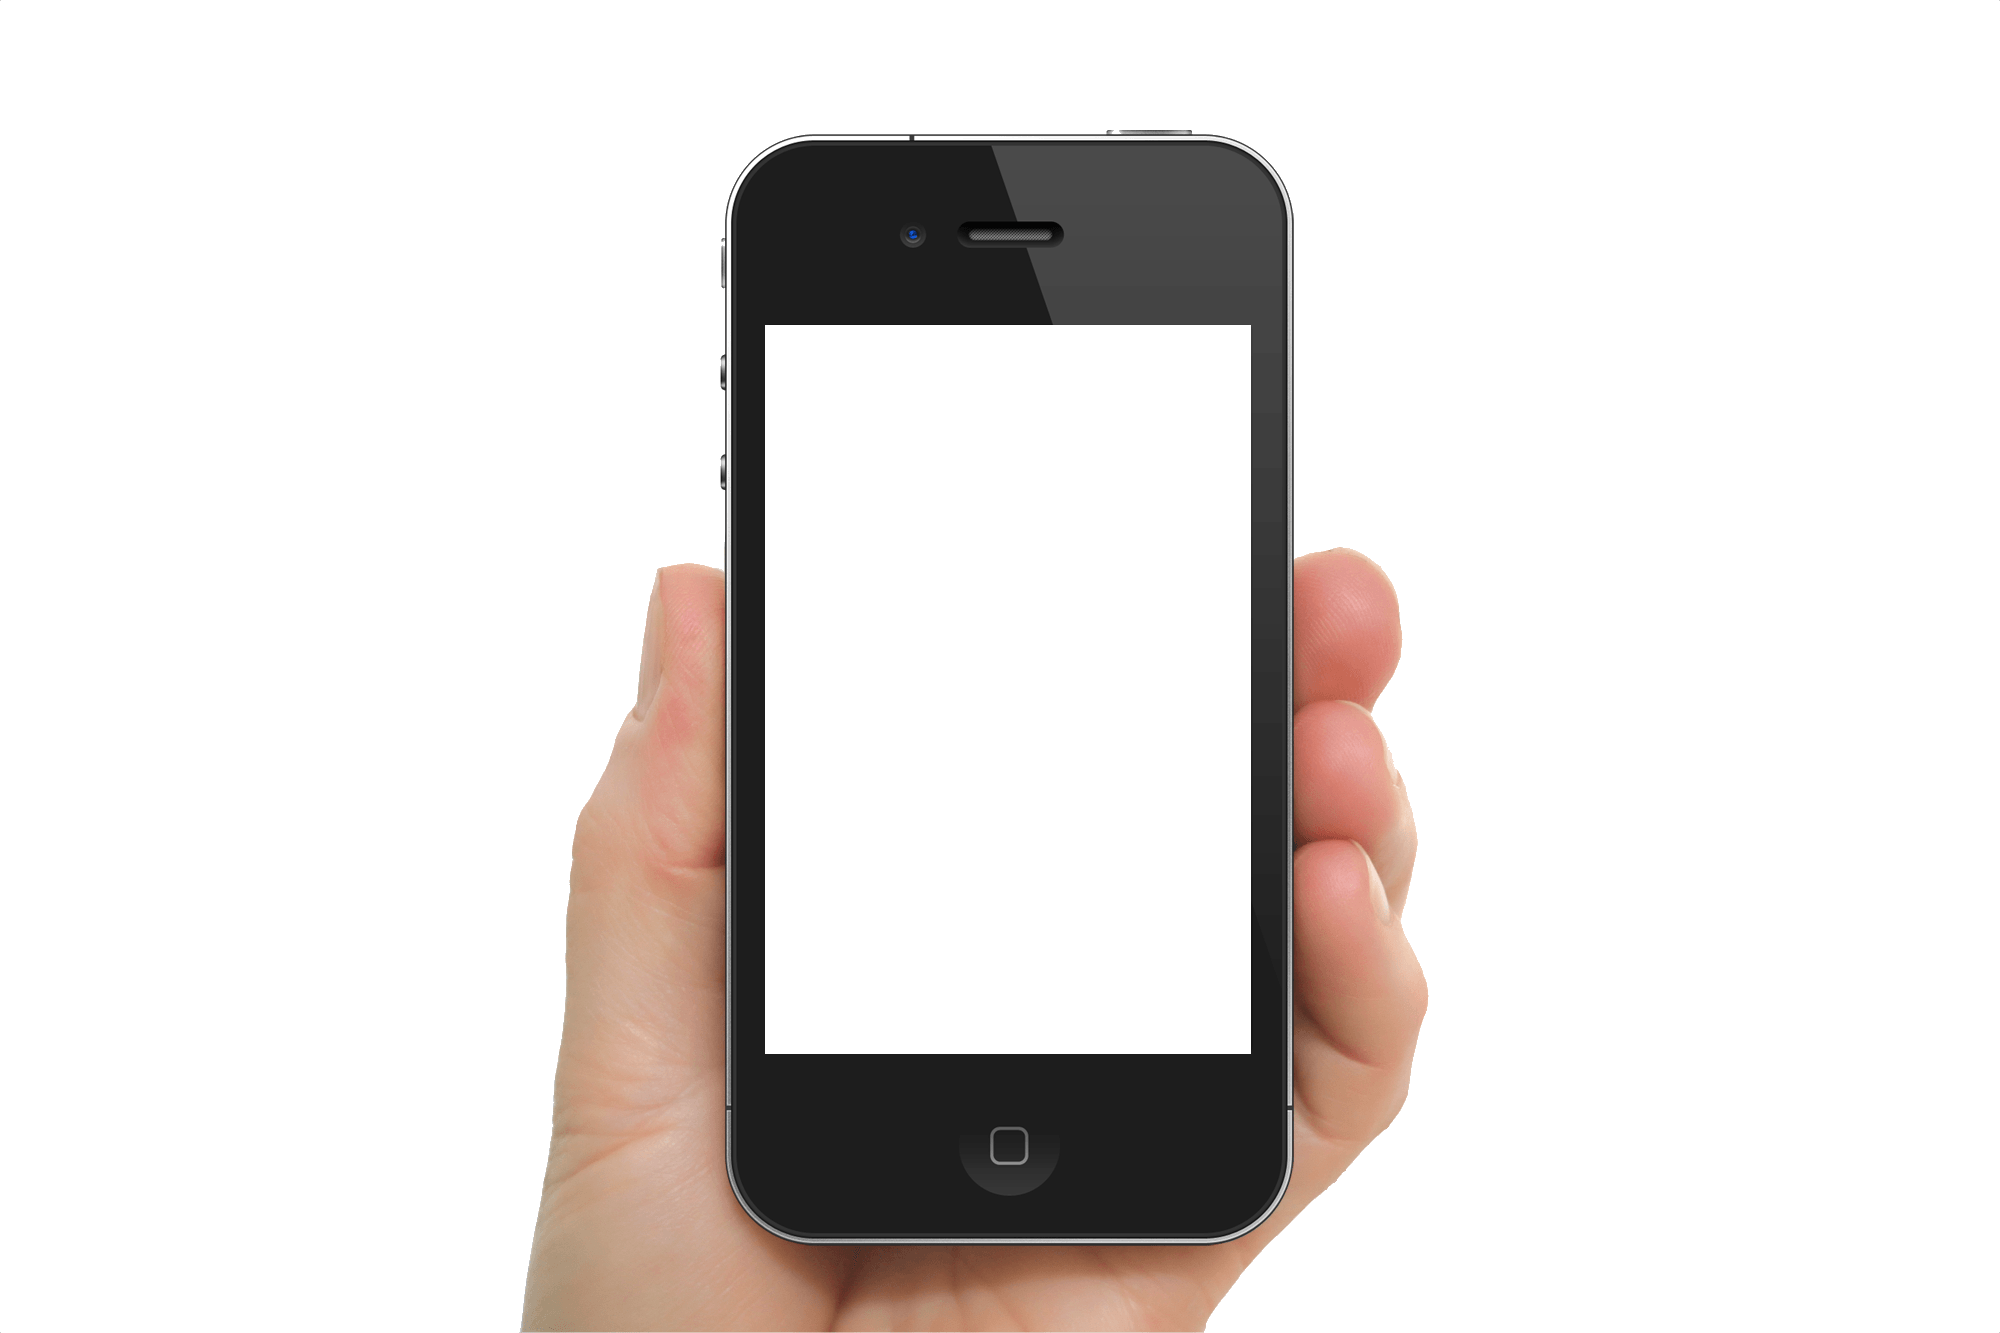 iphone hand png. black iphone in hand transparent png image png